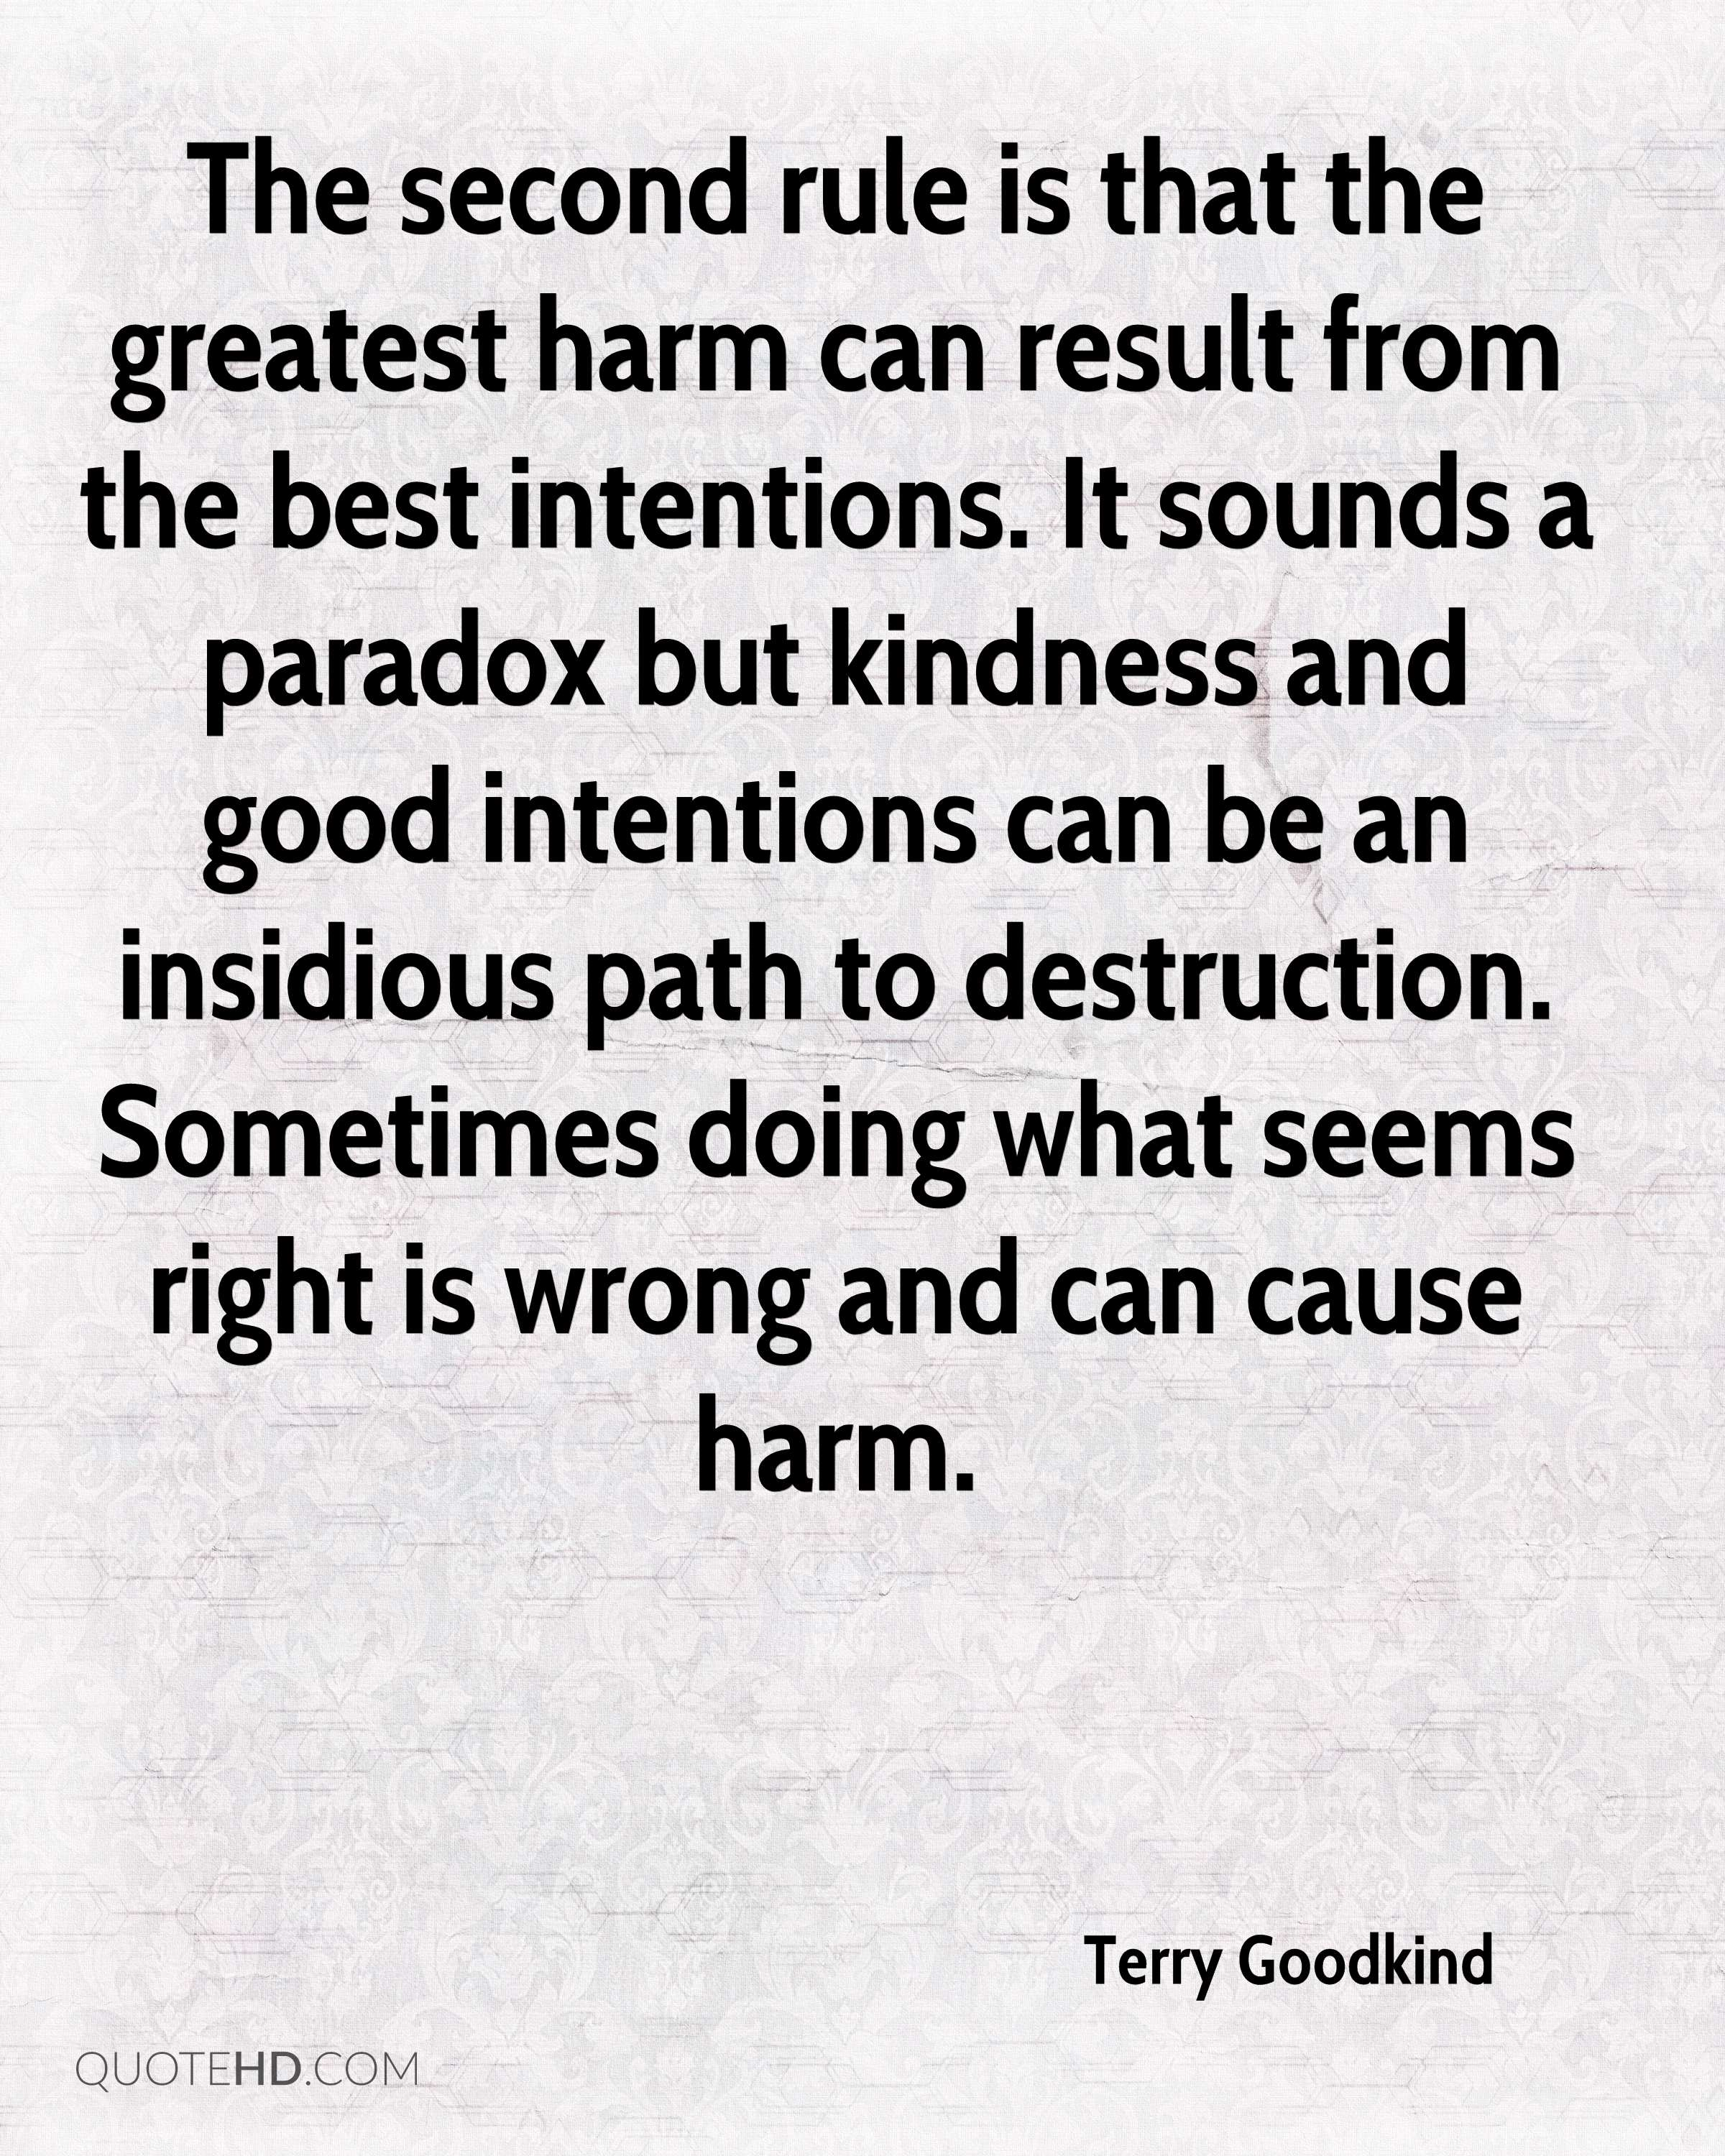 The second rule is that the greatest harm can result from the best intentions. It sounds a paradox but kindness and good intentions can be an insidious path to destruction. Sometimes doing what seems right is wrong and can cause harm.